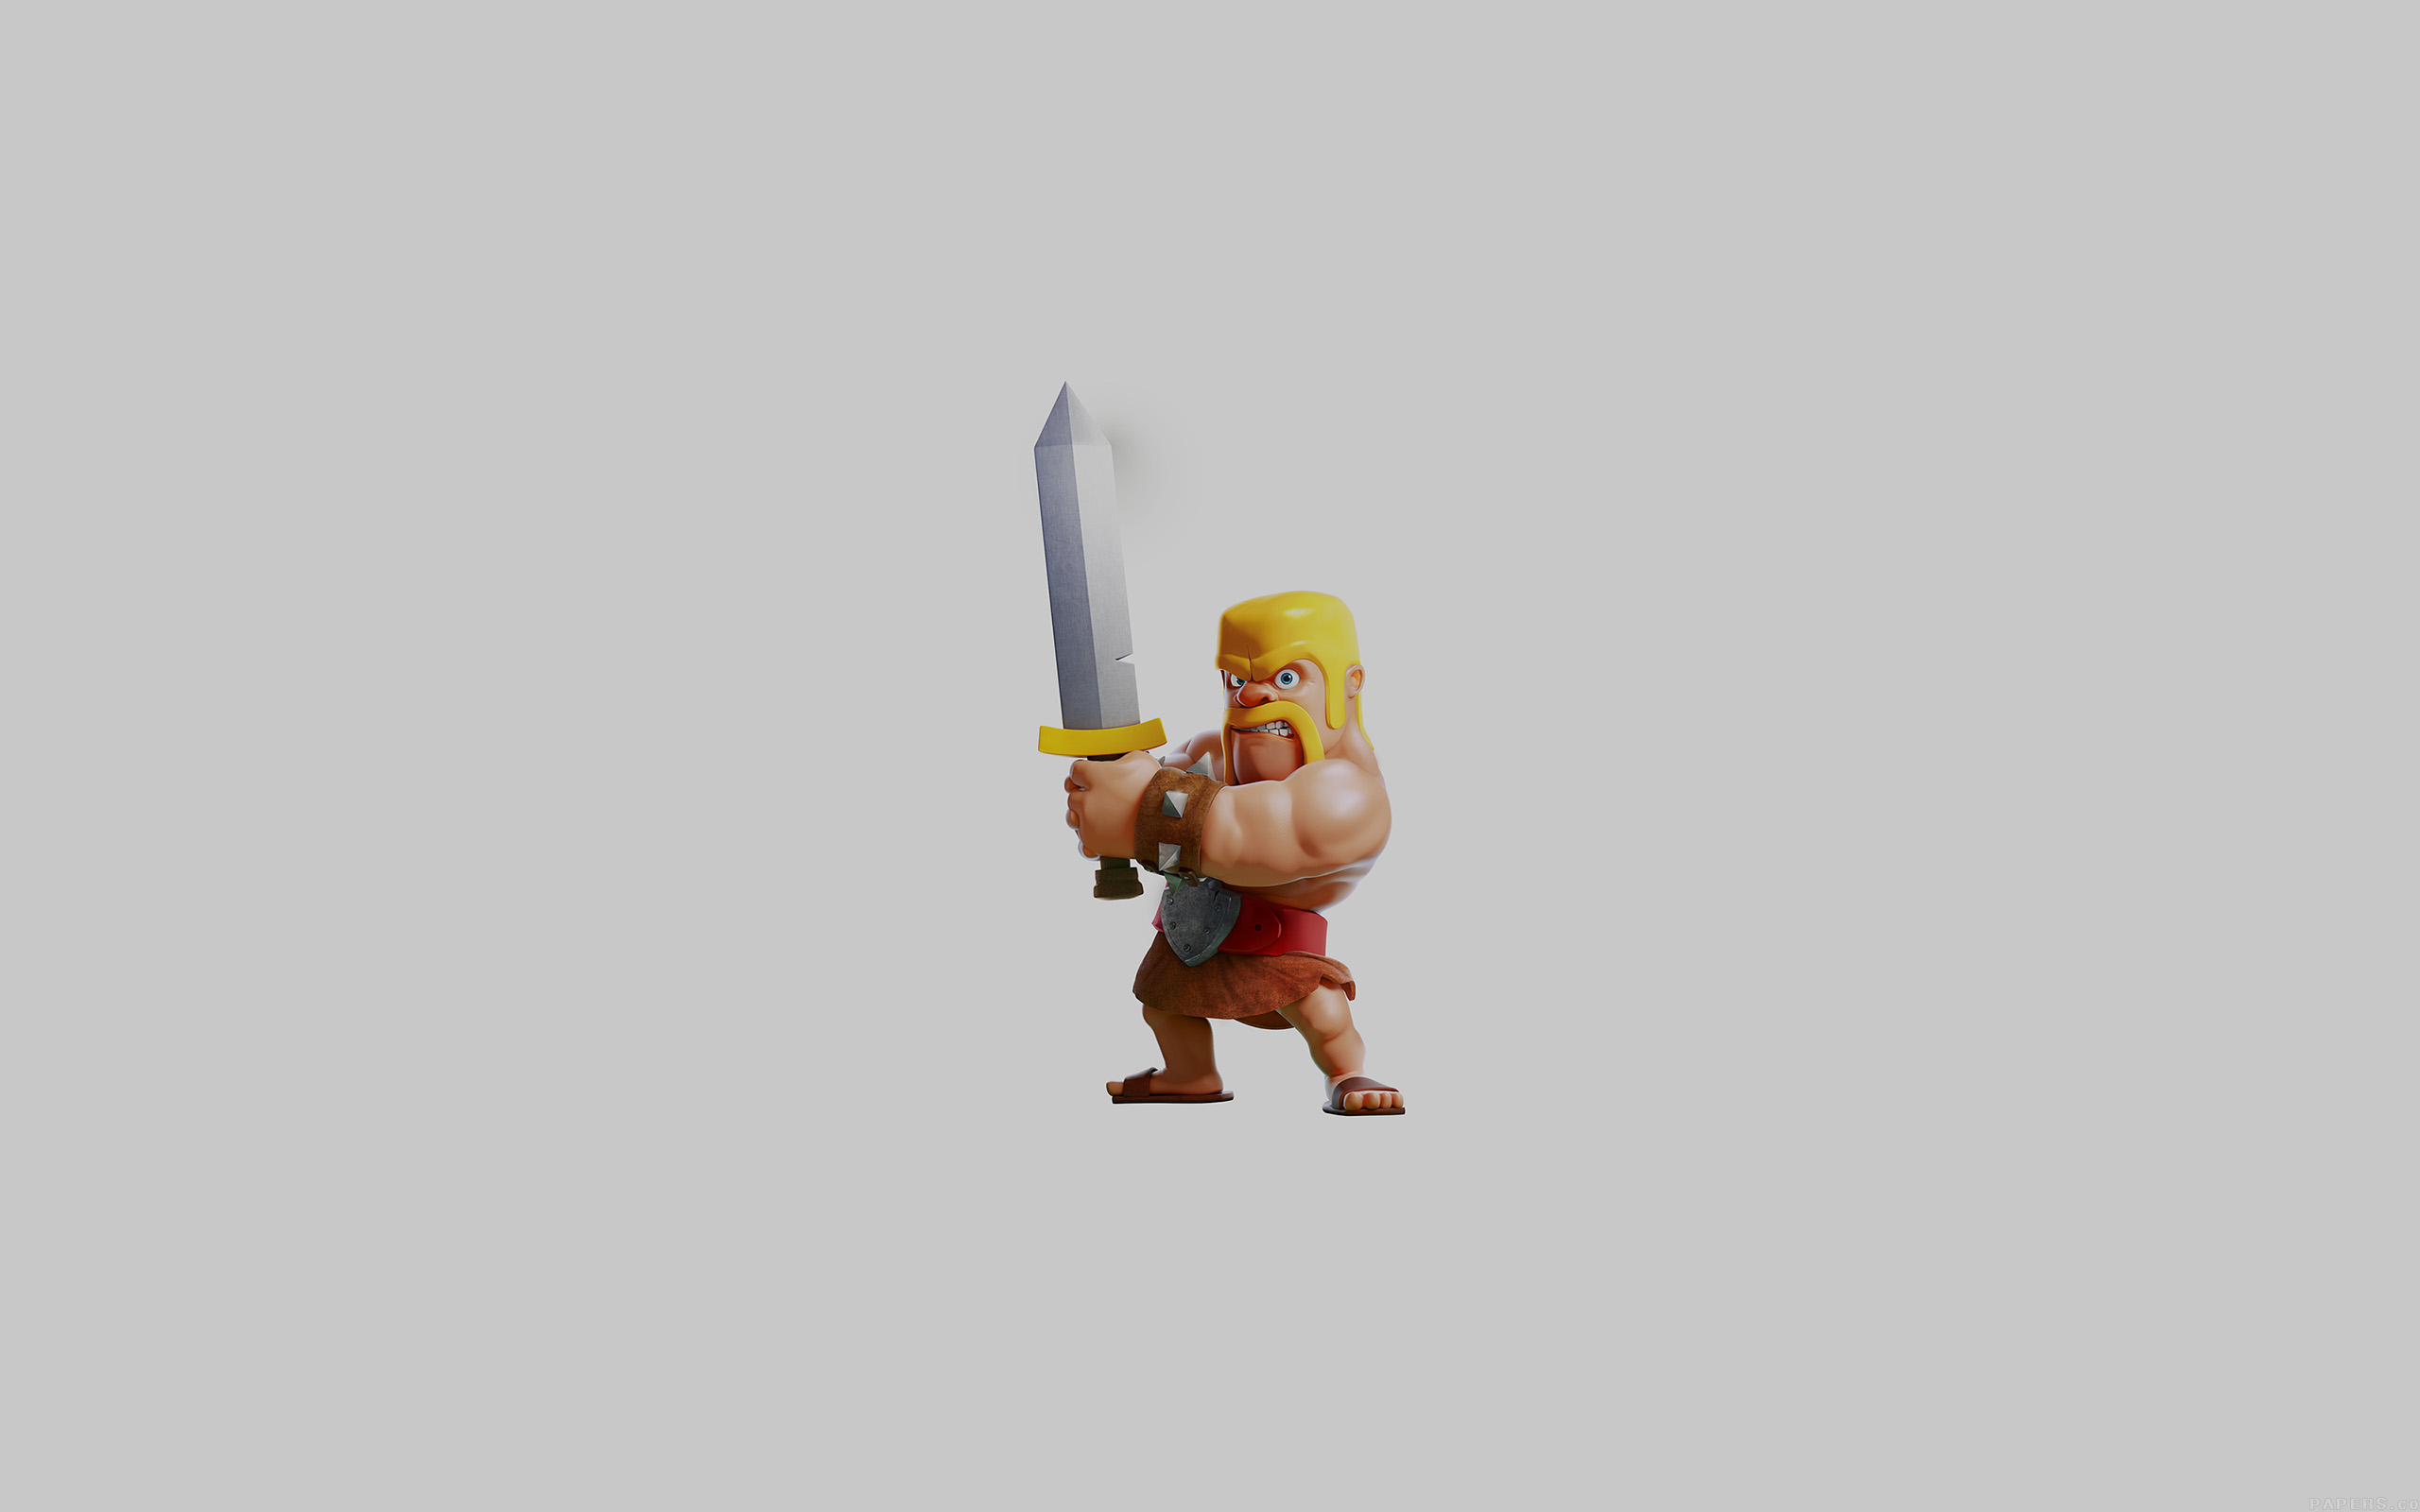 Barbarian Clash Of Clans Hd Hd Games 4k Wallpapers: 3840 X 2160